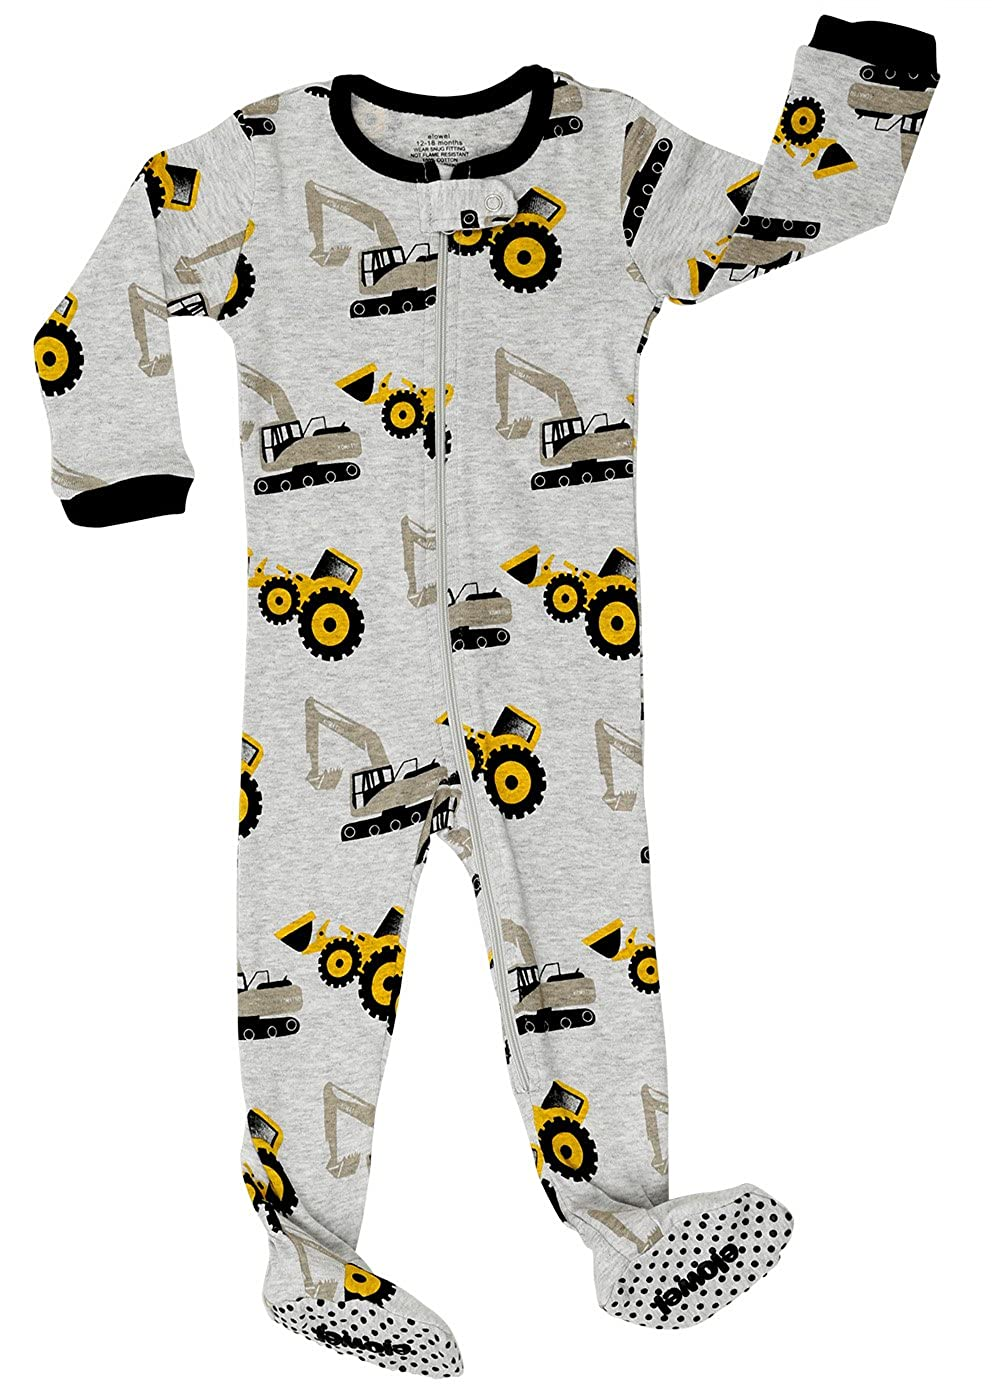 Elowel Baby Boys Footed Helicopter Pajama Sleeper 100% Cotton (Size 6M-5Years) fb-Helicopter00